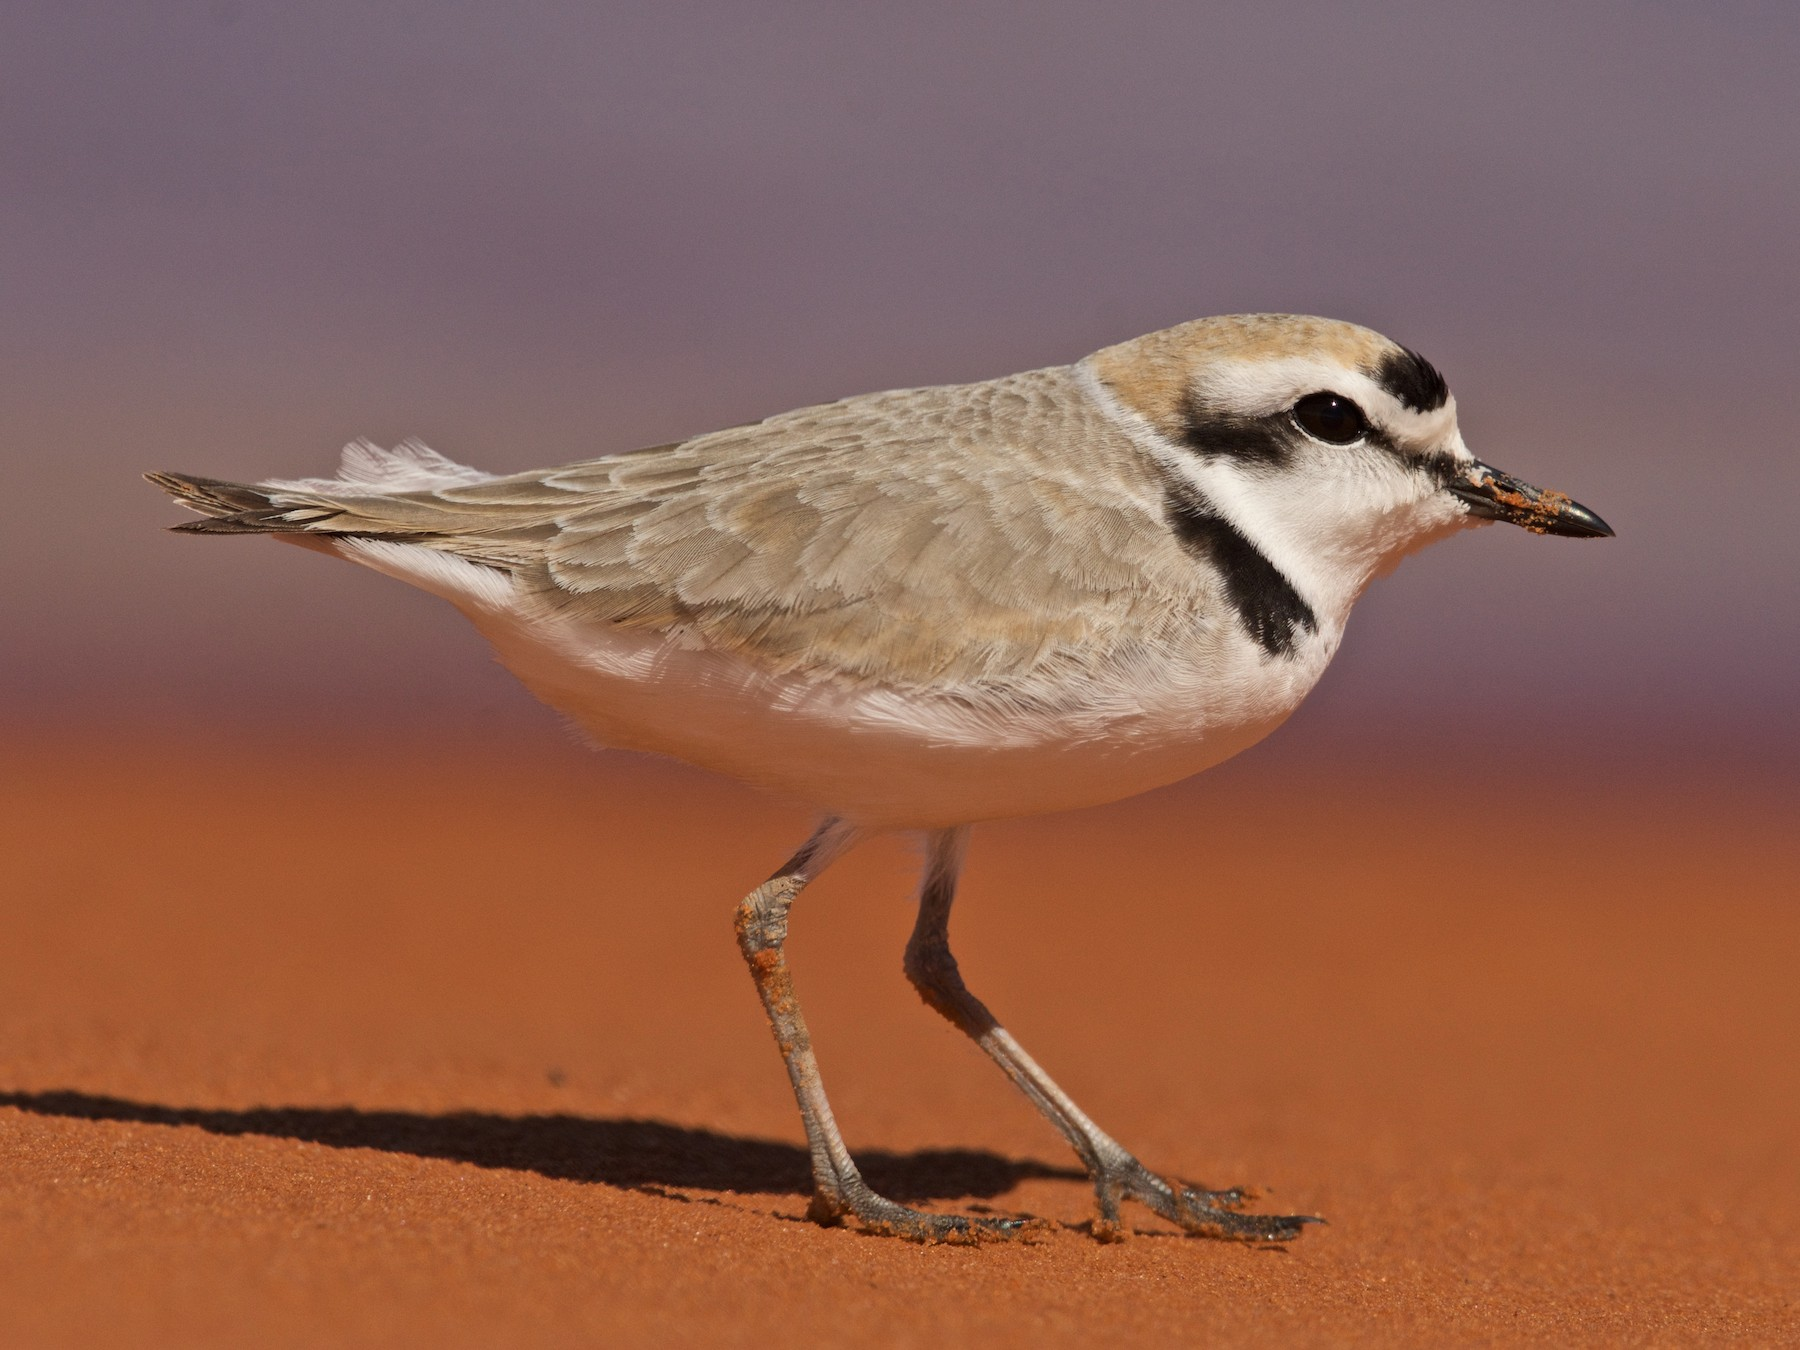 Snowy Plover - Mike Schijf